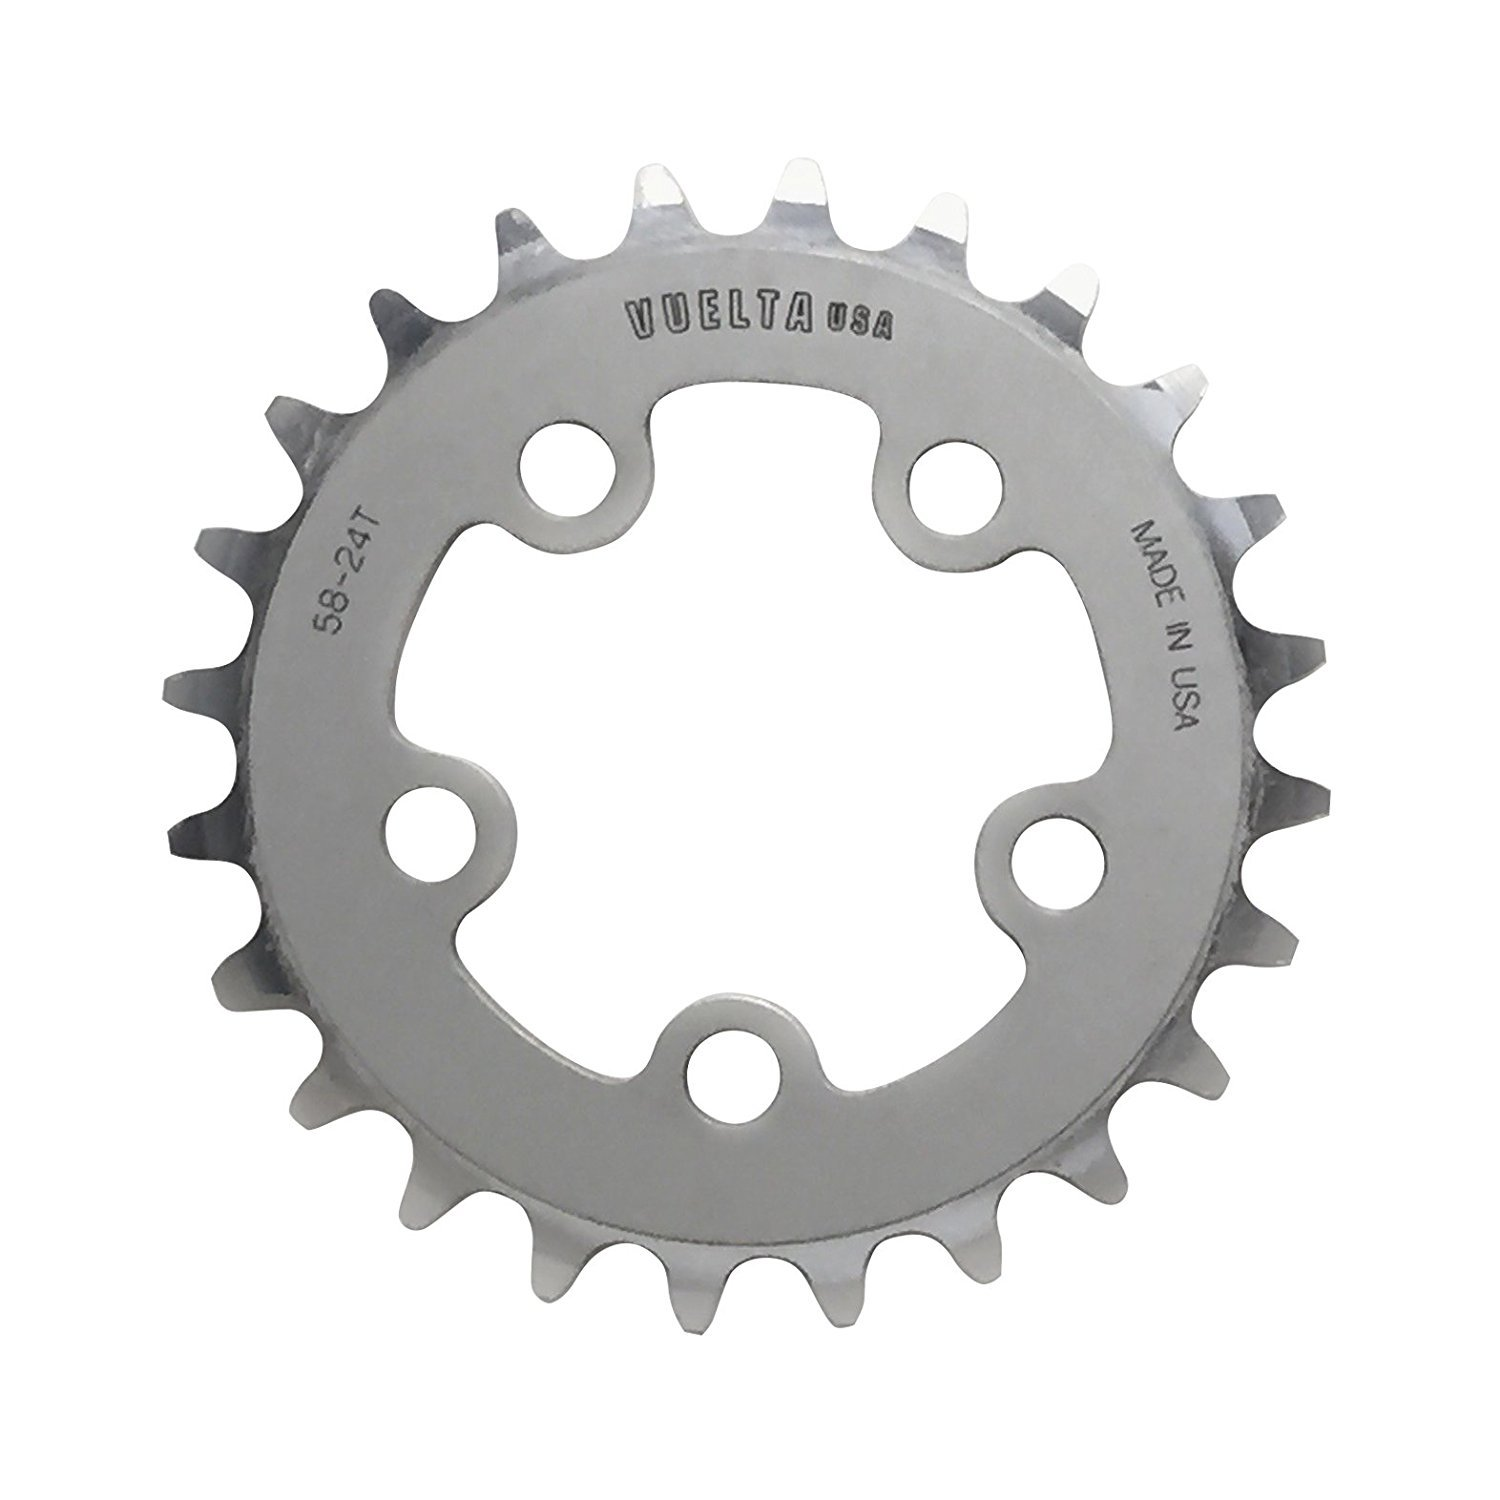 High Quality SE Flat 130mm/BCD Chainring, Silver B07C2NPFVB